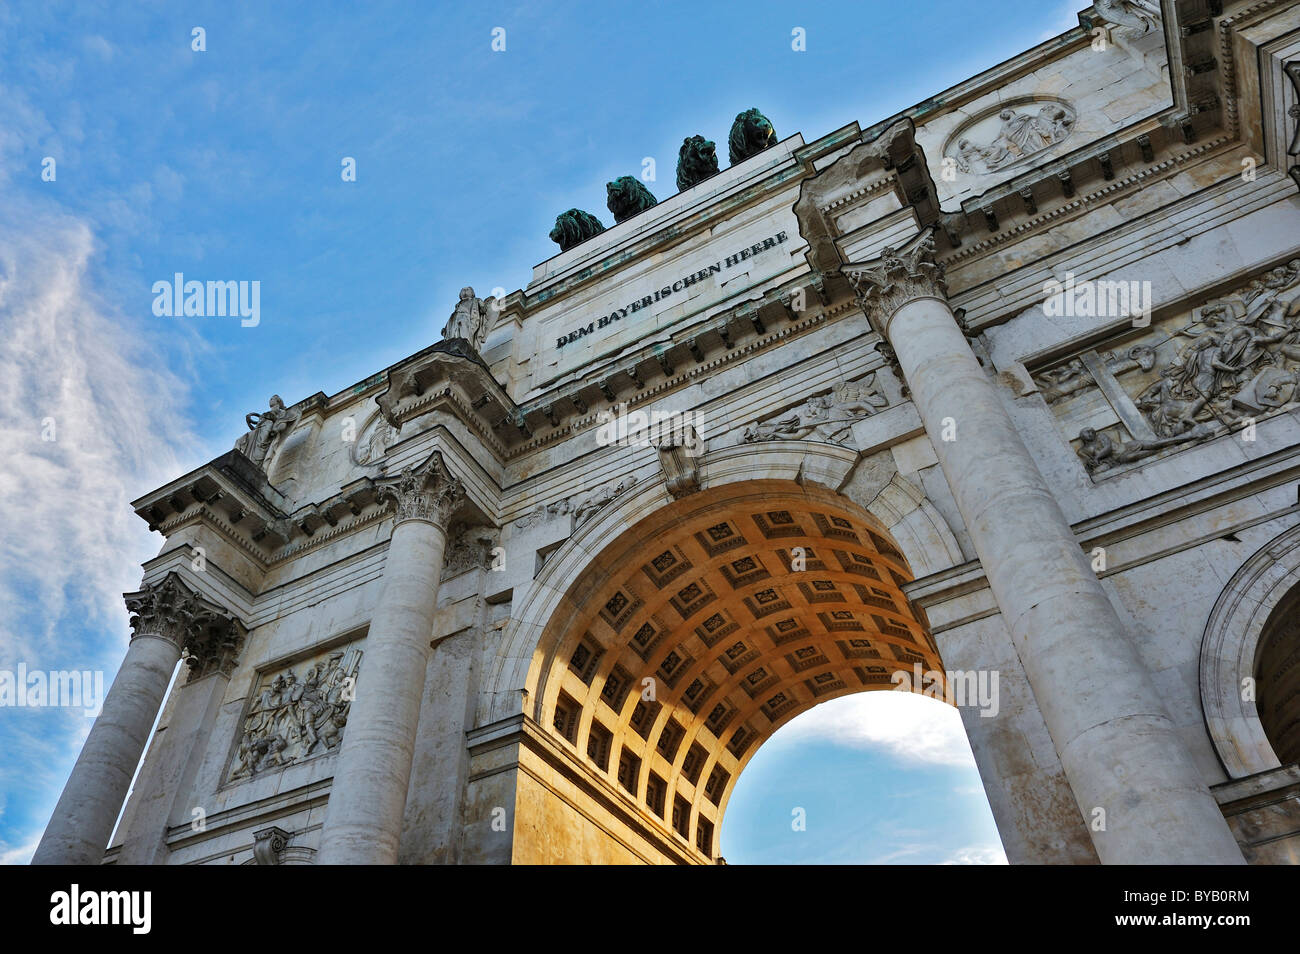 Victory Gate with Corinthian columns, north side, left, Munich, Bavermany, Europe - Stock Image